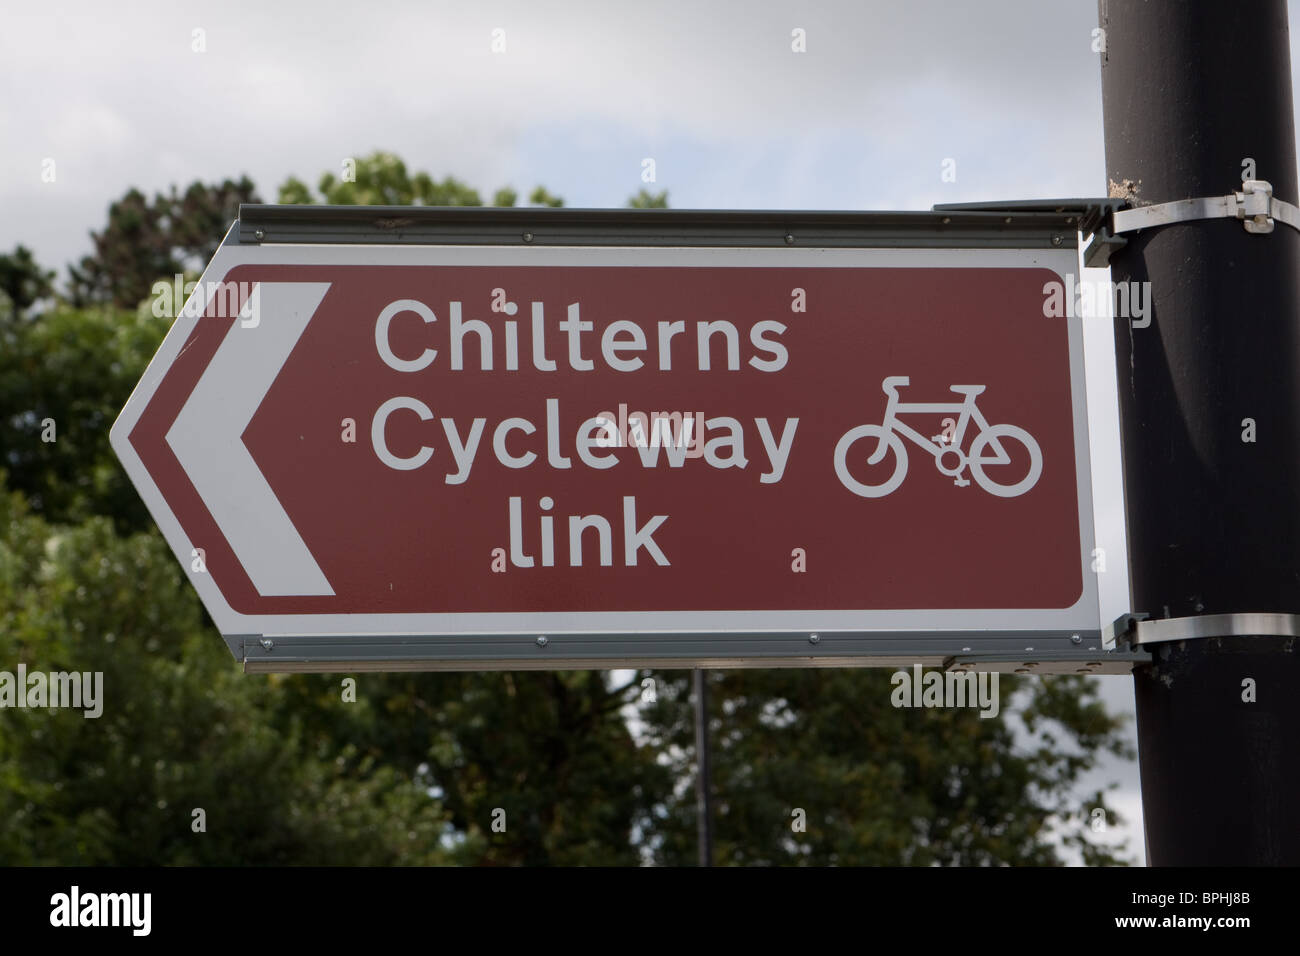 Chilterns Cycleway Link sign - Stock Image